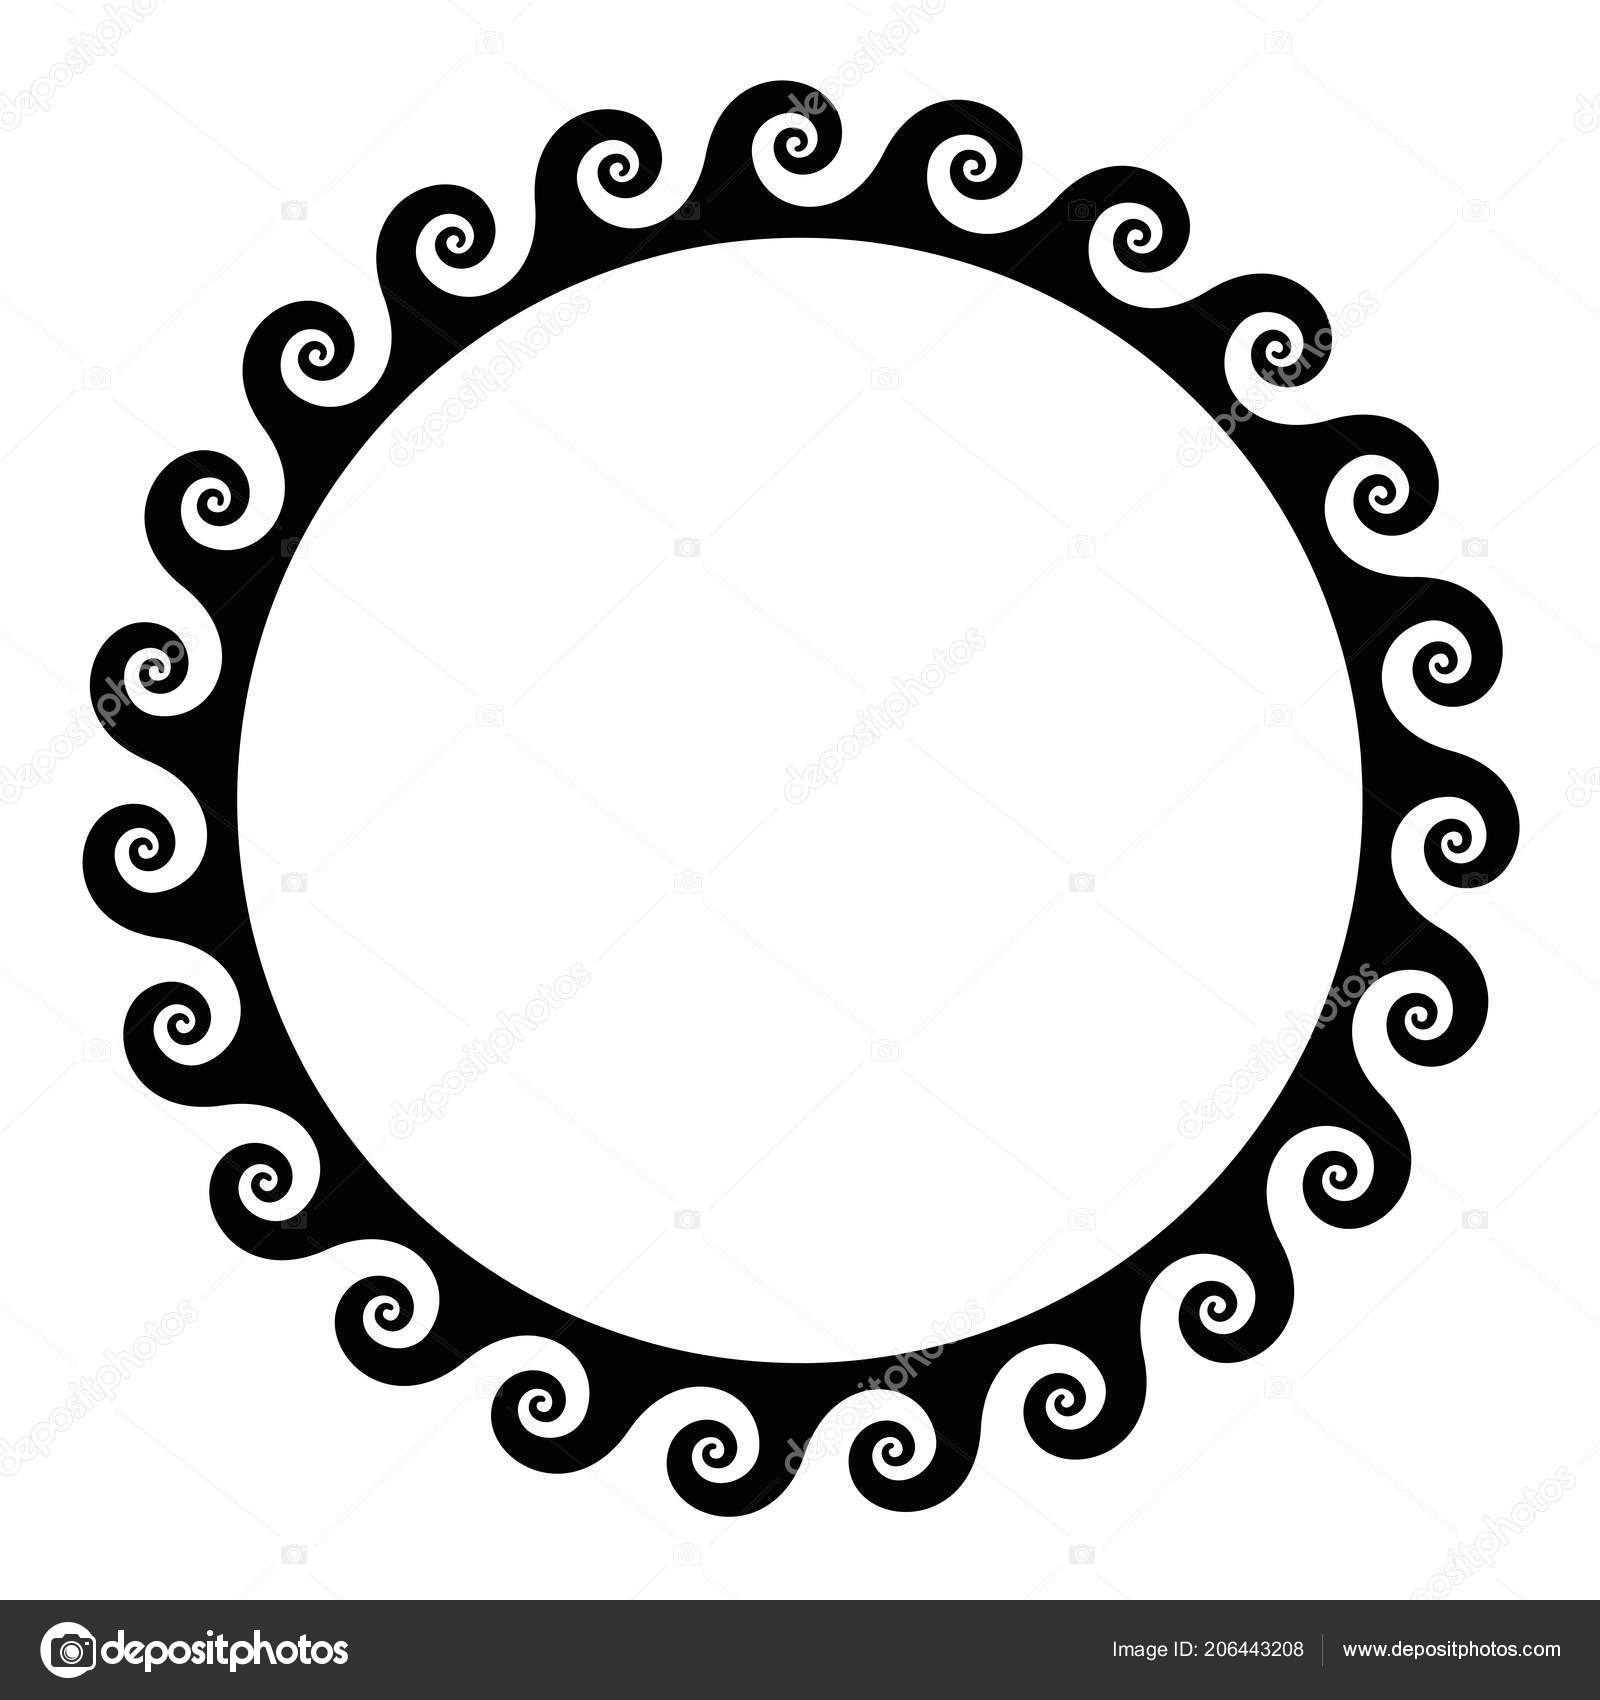 black seamless spirals frame made running dog pattern seamless